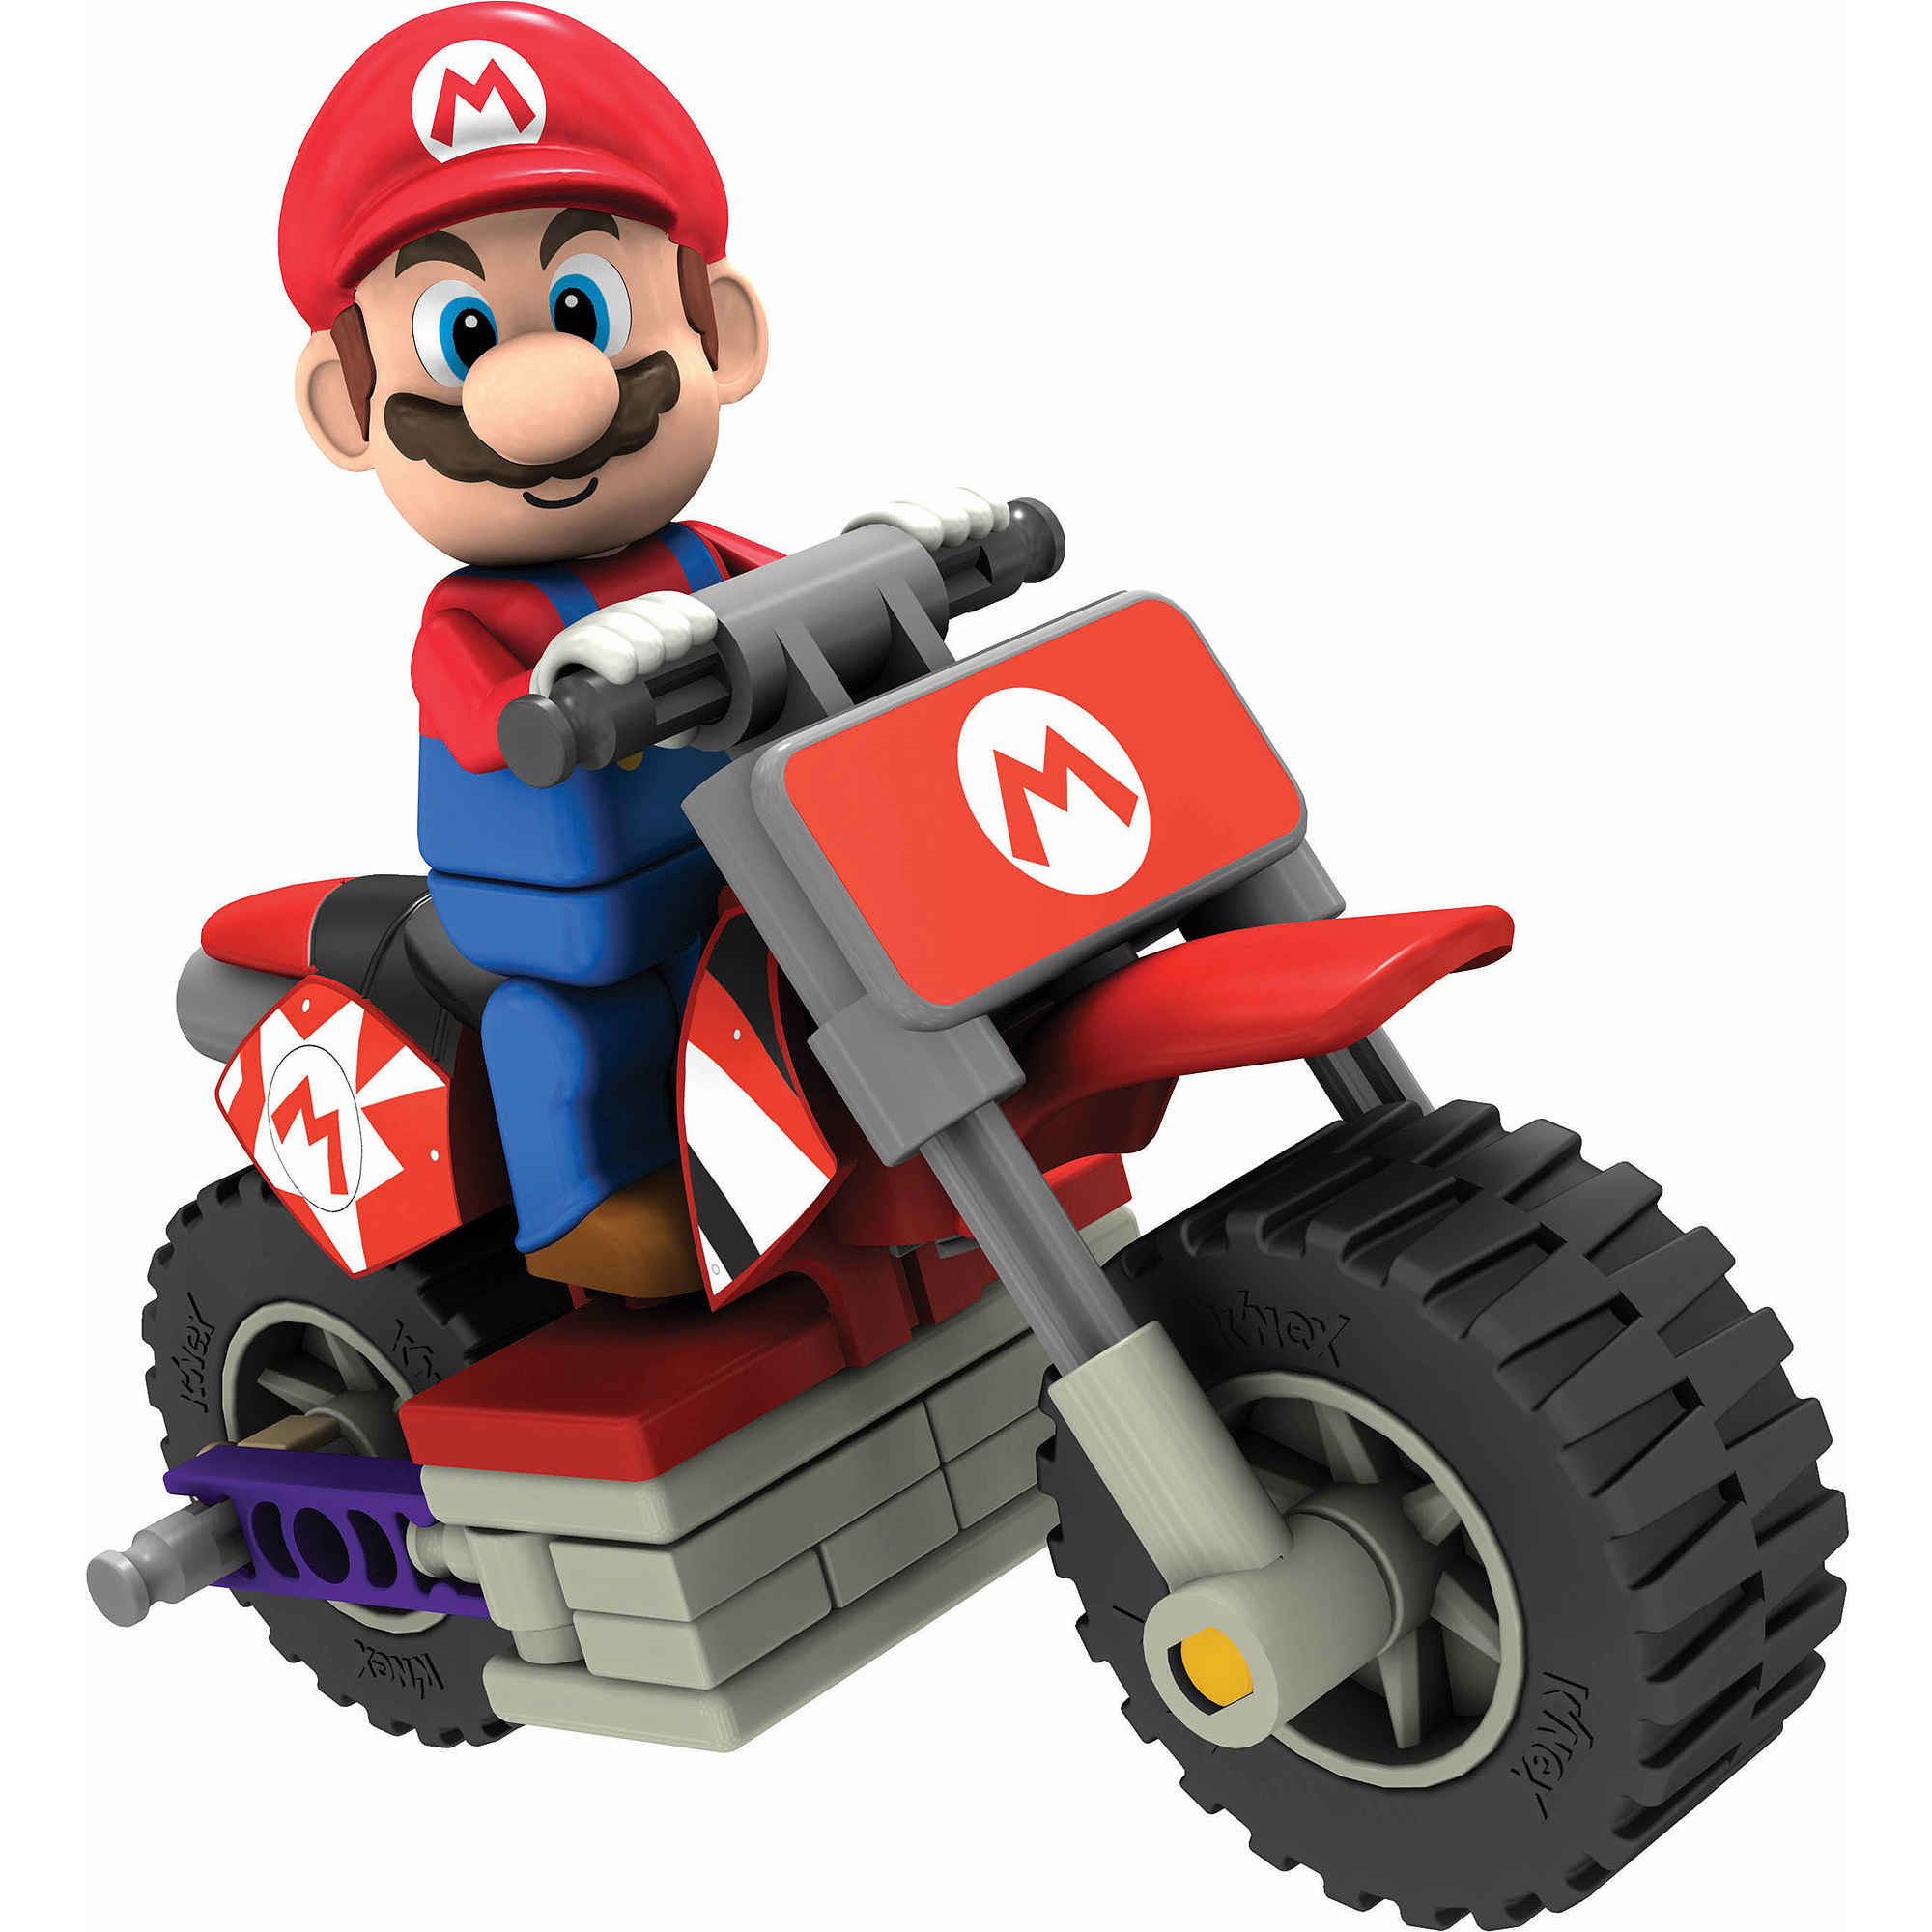 K'NEX Mario Kart Wii Building Set: Mario with Standard Bike